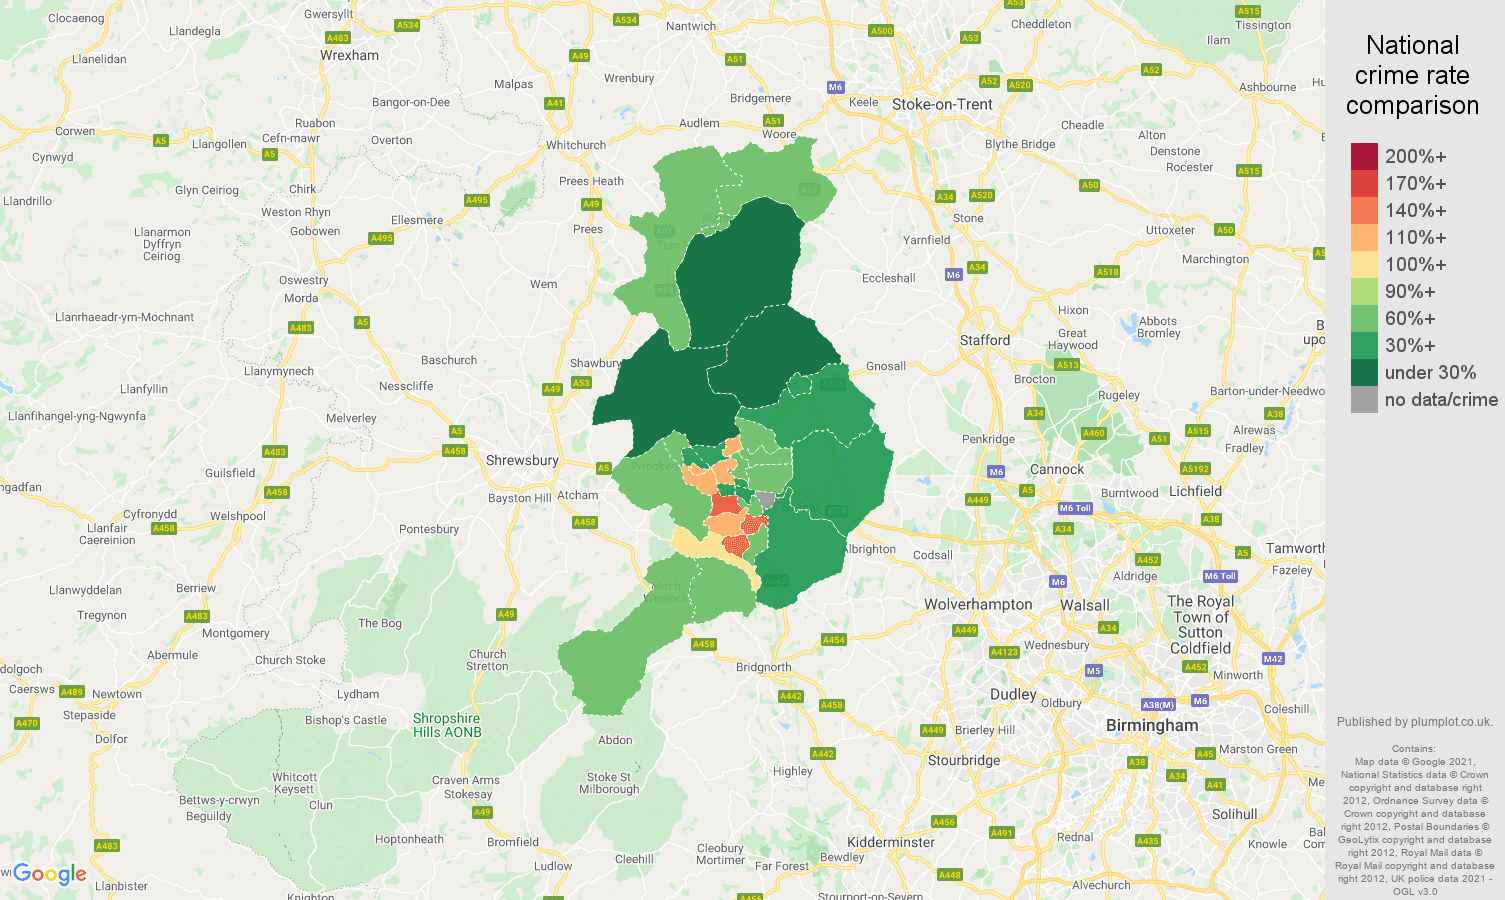 Telford antisocial behaviour crime rate comparison map